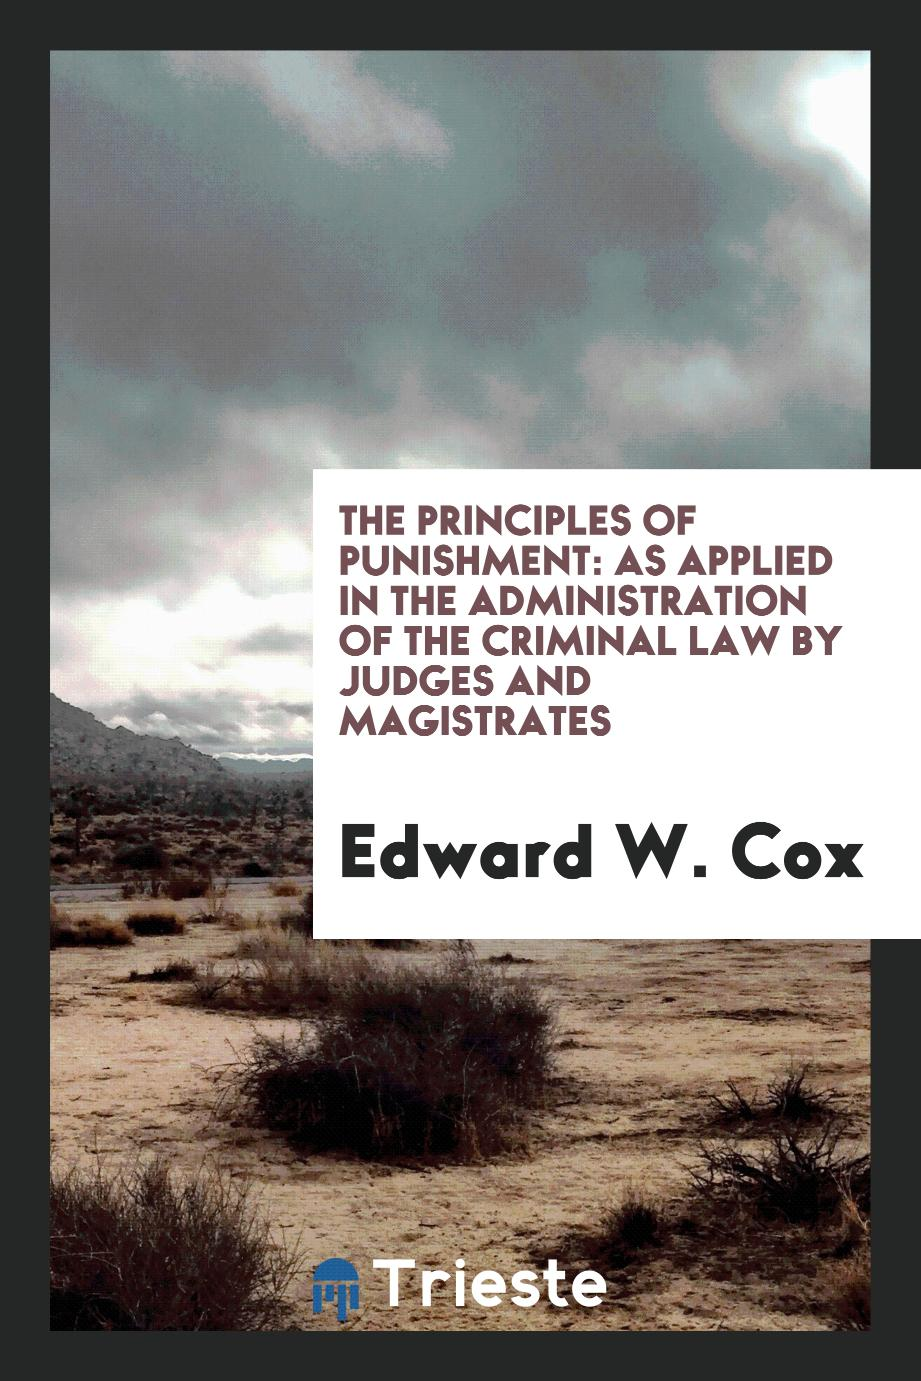 The Principles of Punishment: As Applied in the Administration of the Criminal Law by Judges and Magistrates